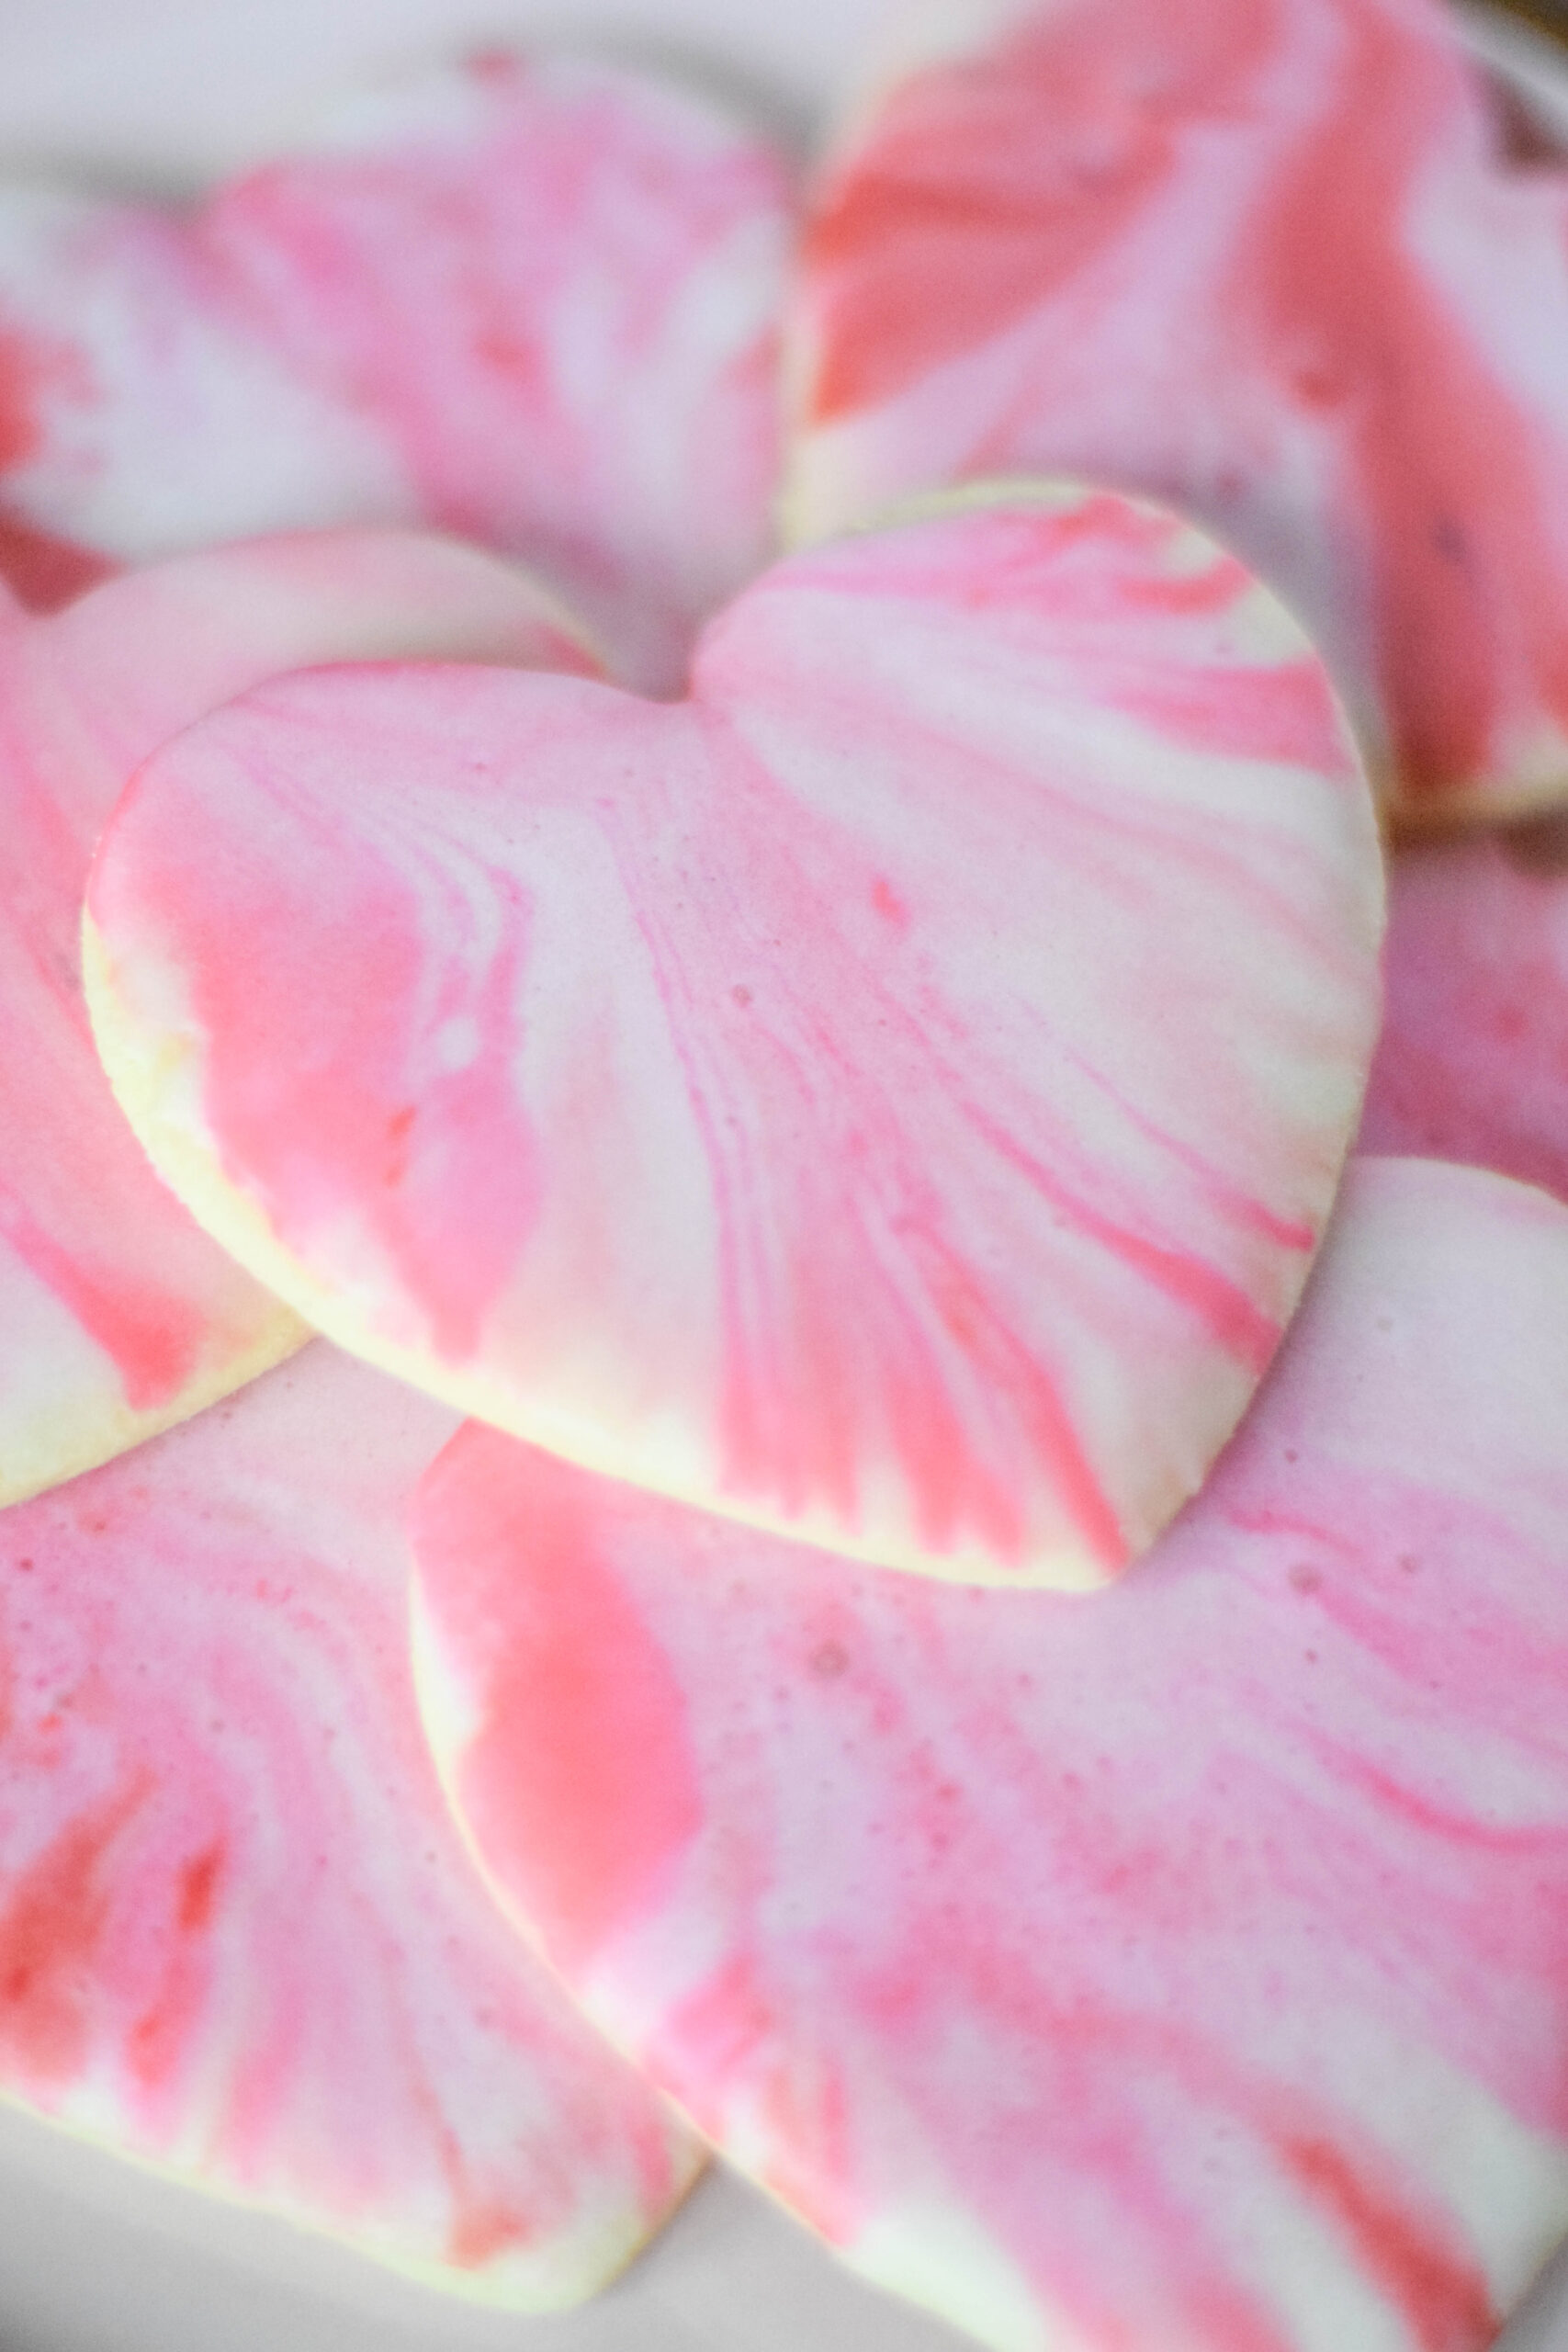 Stack of heart-shaped sugar cookies with red, pink, and white marble icing